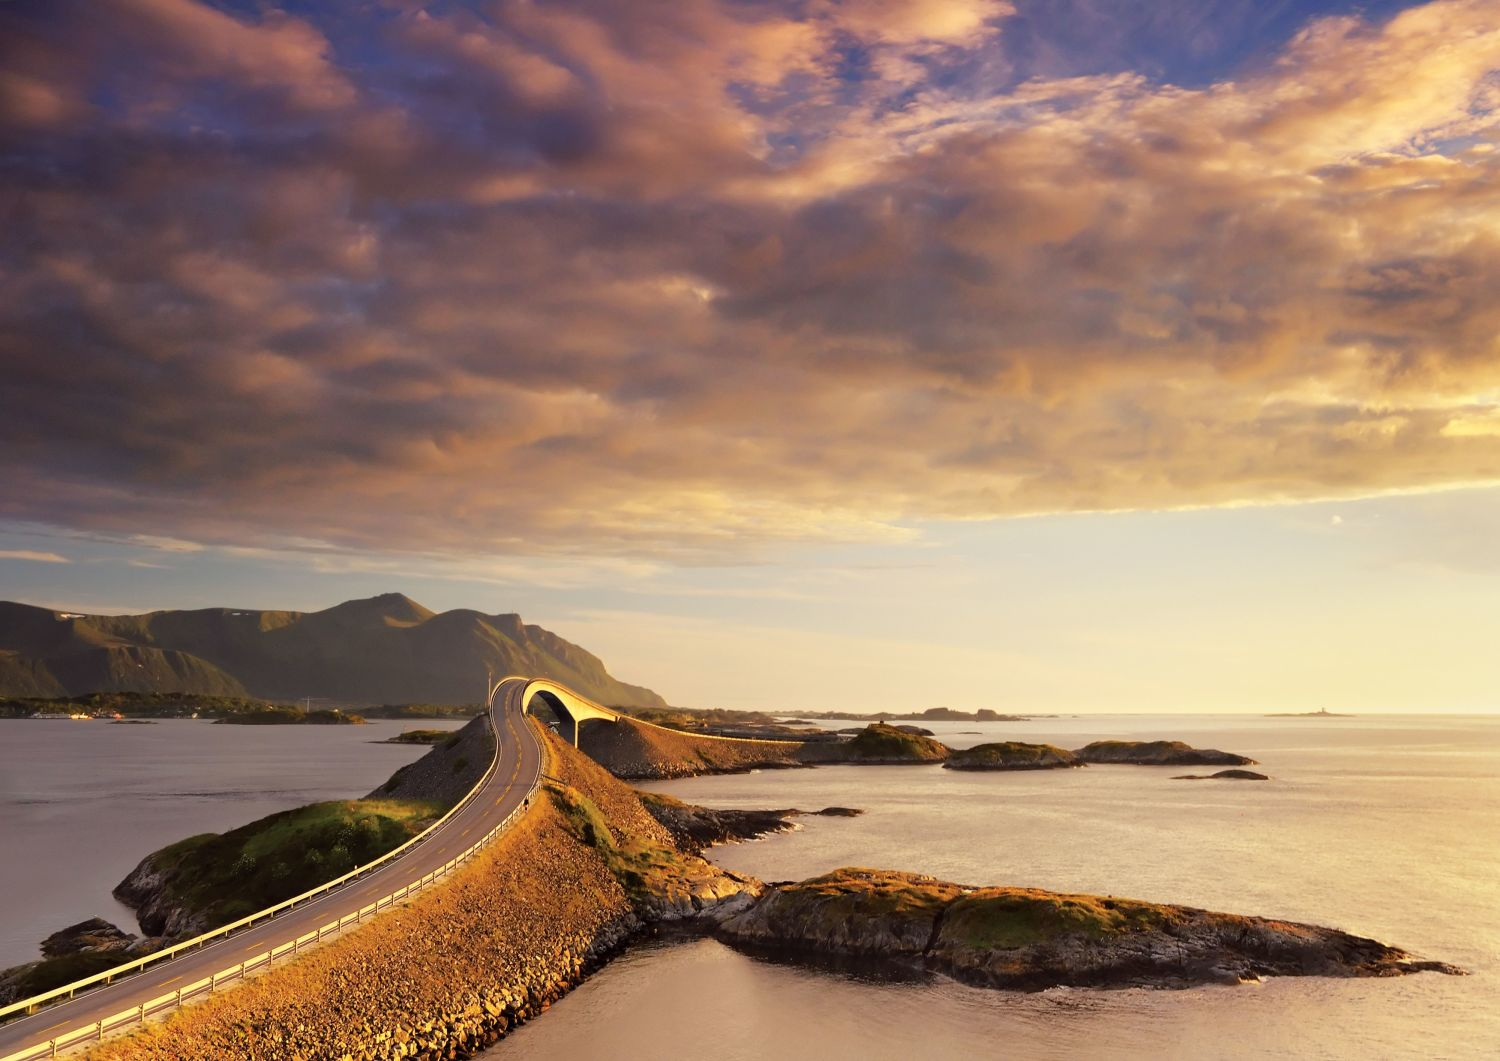 The Atlantic Road, beautifully coloured by the sunset. Photo: Jacek rózycki, visitnorway.com